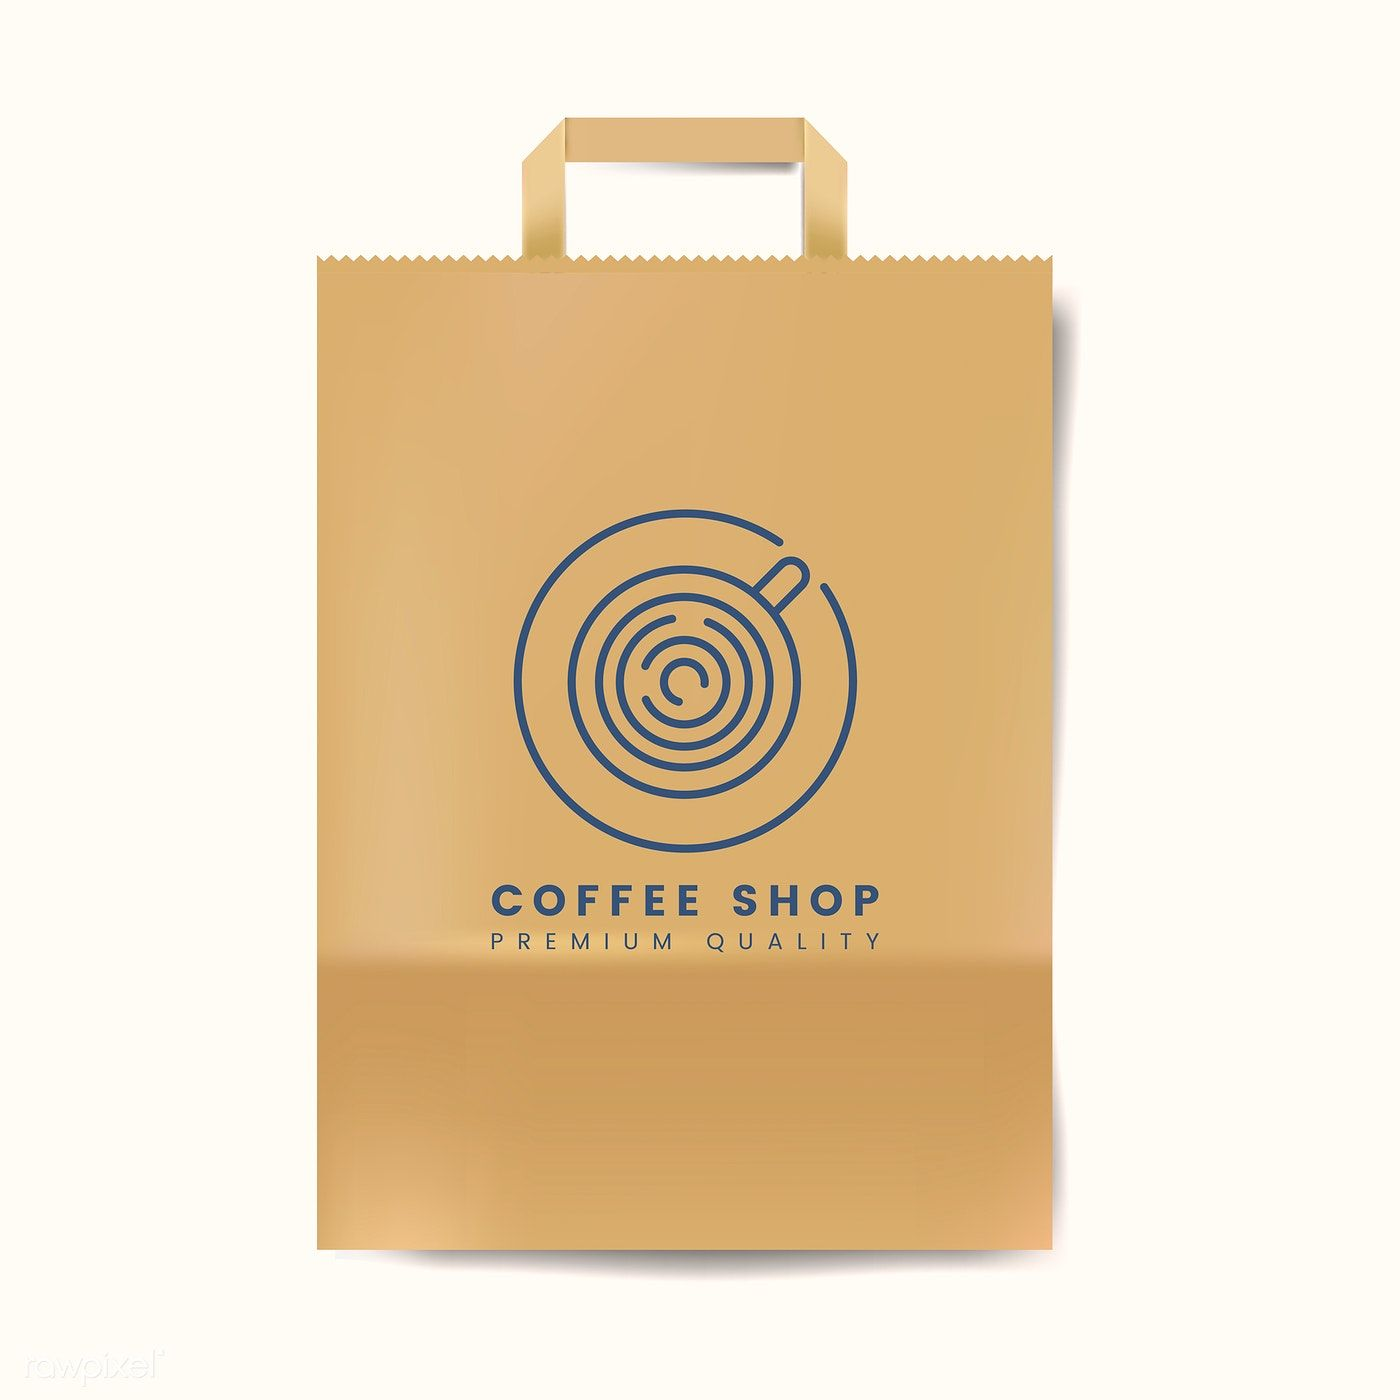 Download Paper Bag Mockup Isolated Vector Free Image By Rawpixel Com Aew Bag Mockup Bags Free Kids